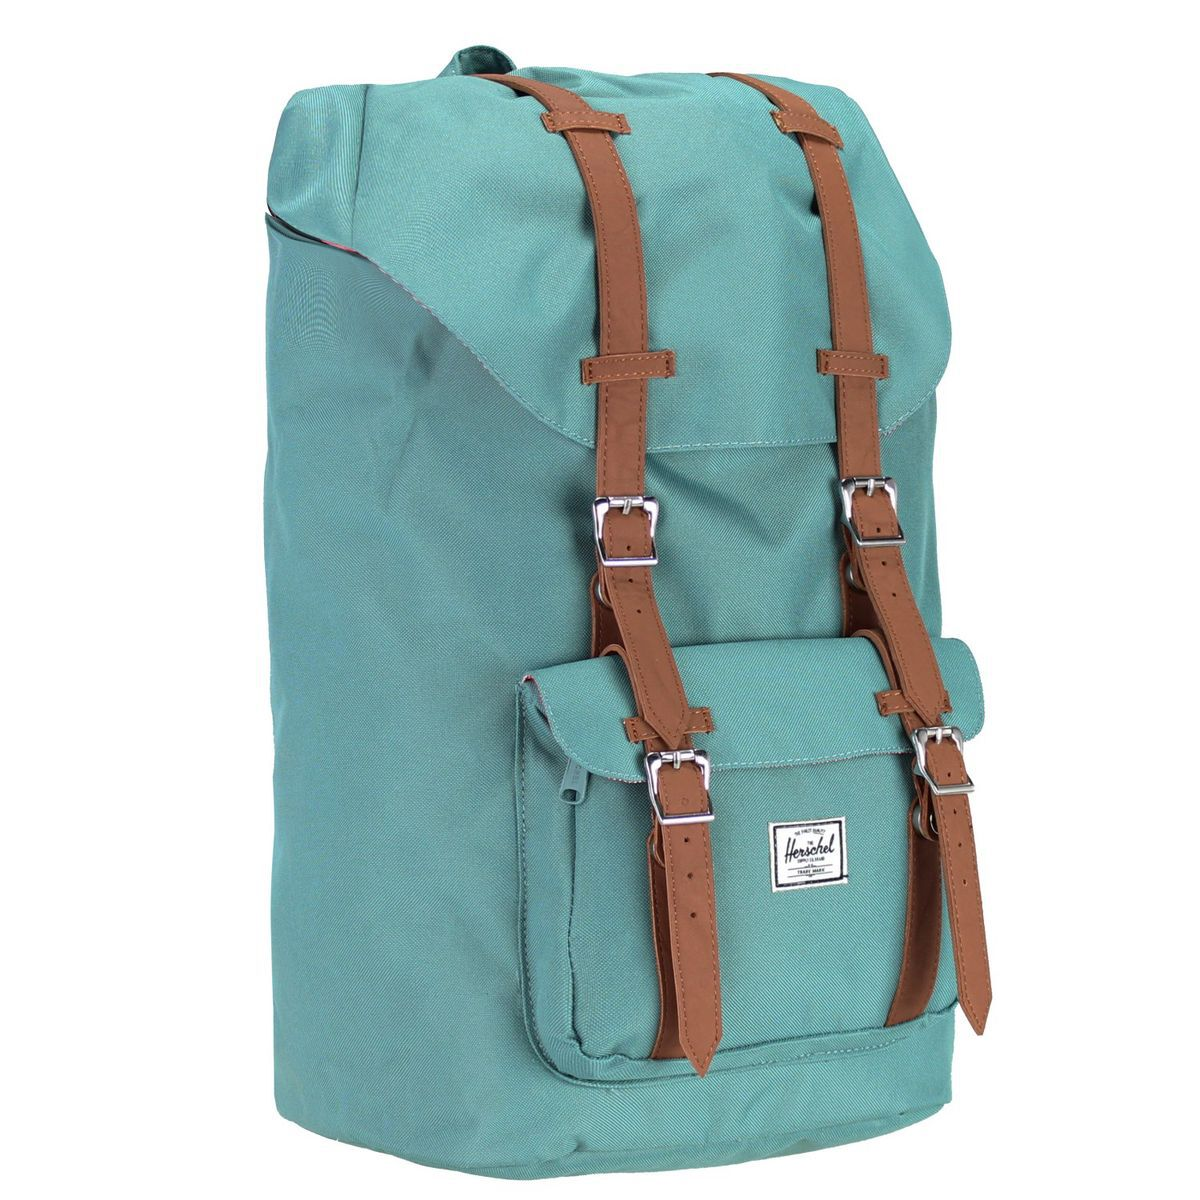 d0de18402f0 Herschel Little America Backpack Rucksack 52 cm Laptopfach